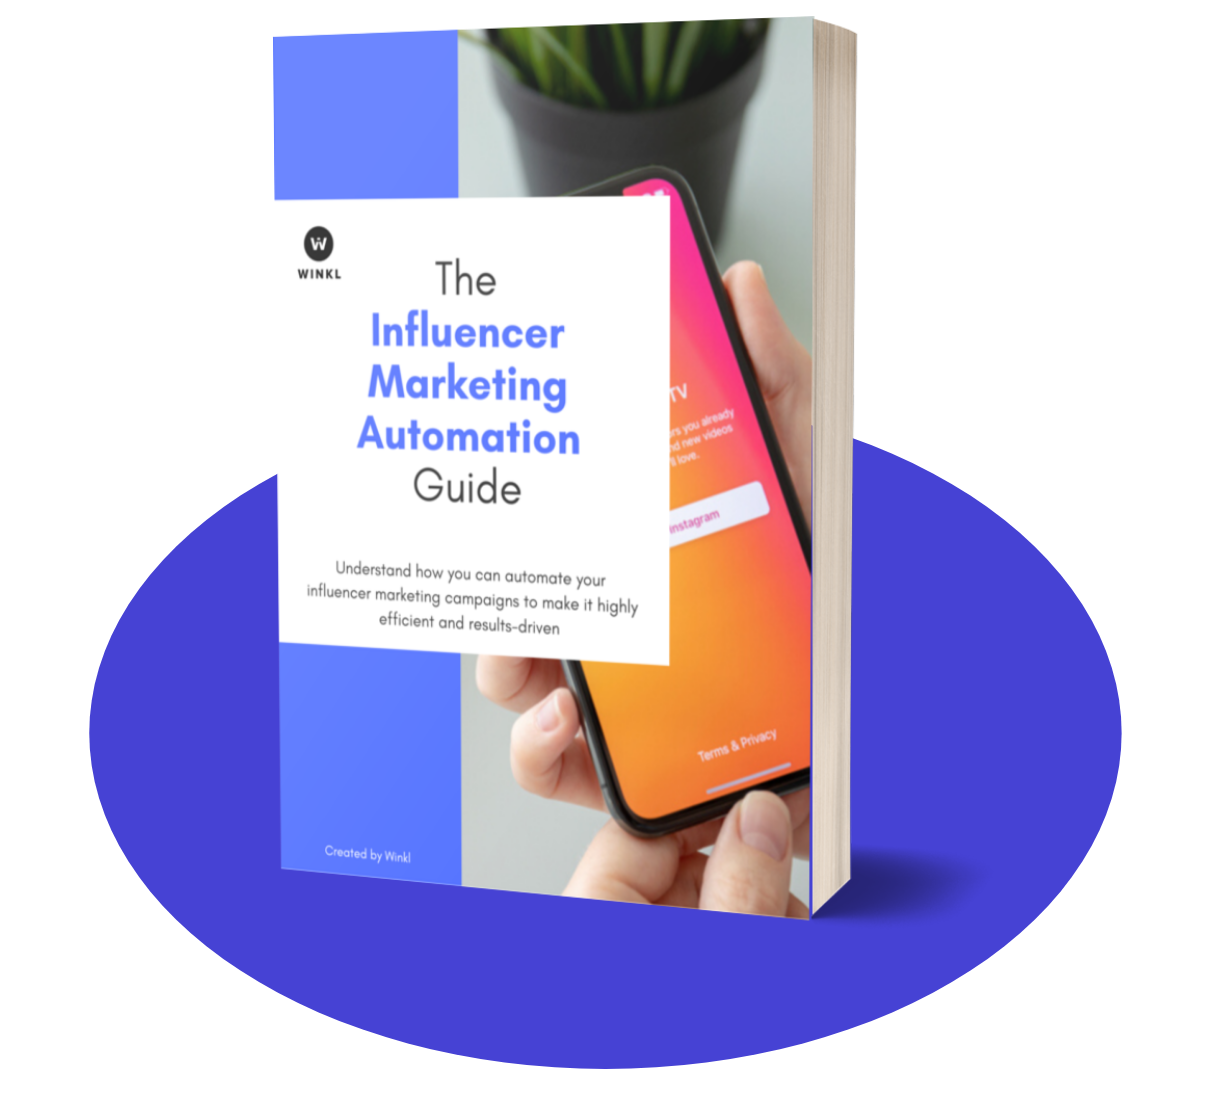 Influencer marketing automation guide by Winkl. Learn to run high impact campaigns and get better ROI at your organization.